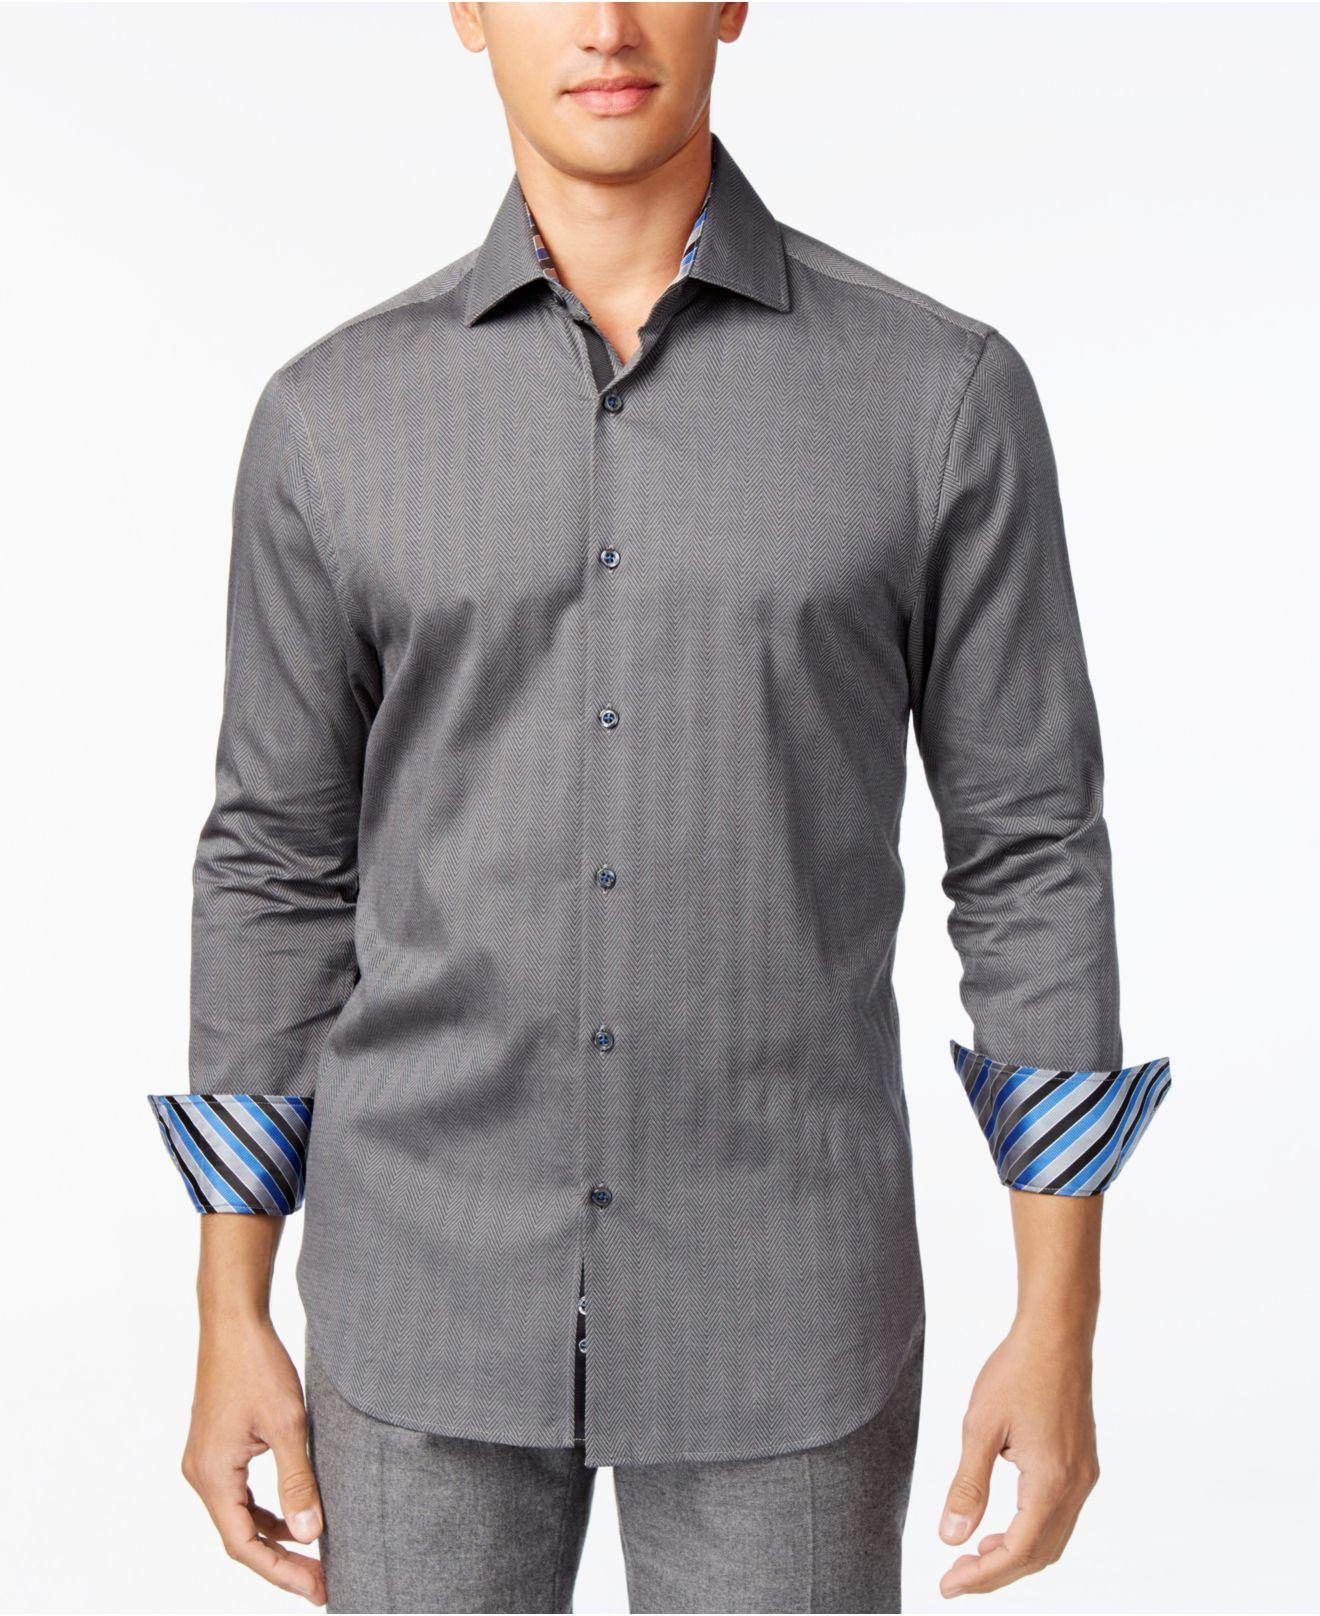 Dress Shirts Made To Wear Untucked